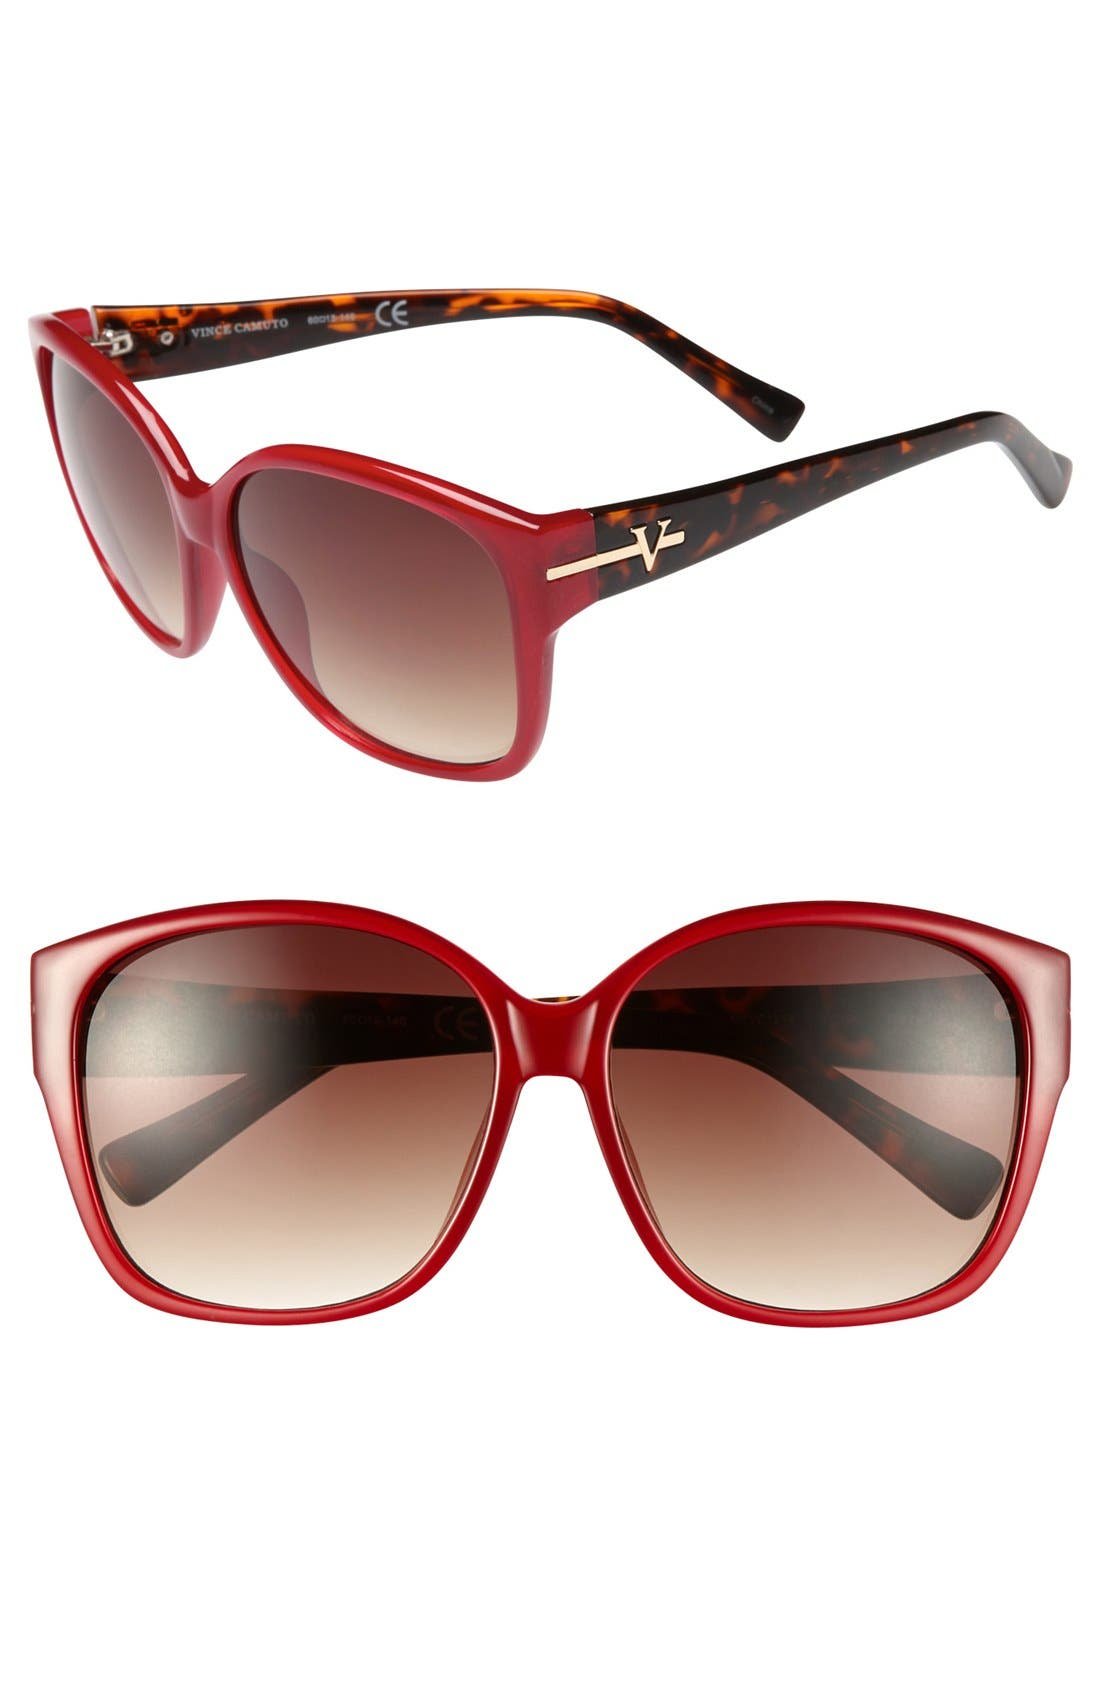 Main Image - Vince Camuto 60mm Retro Sunglasses